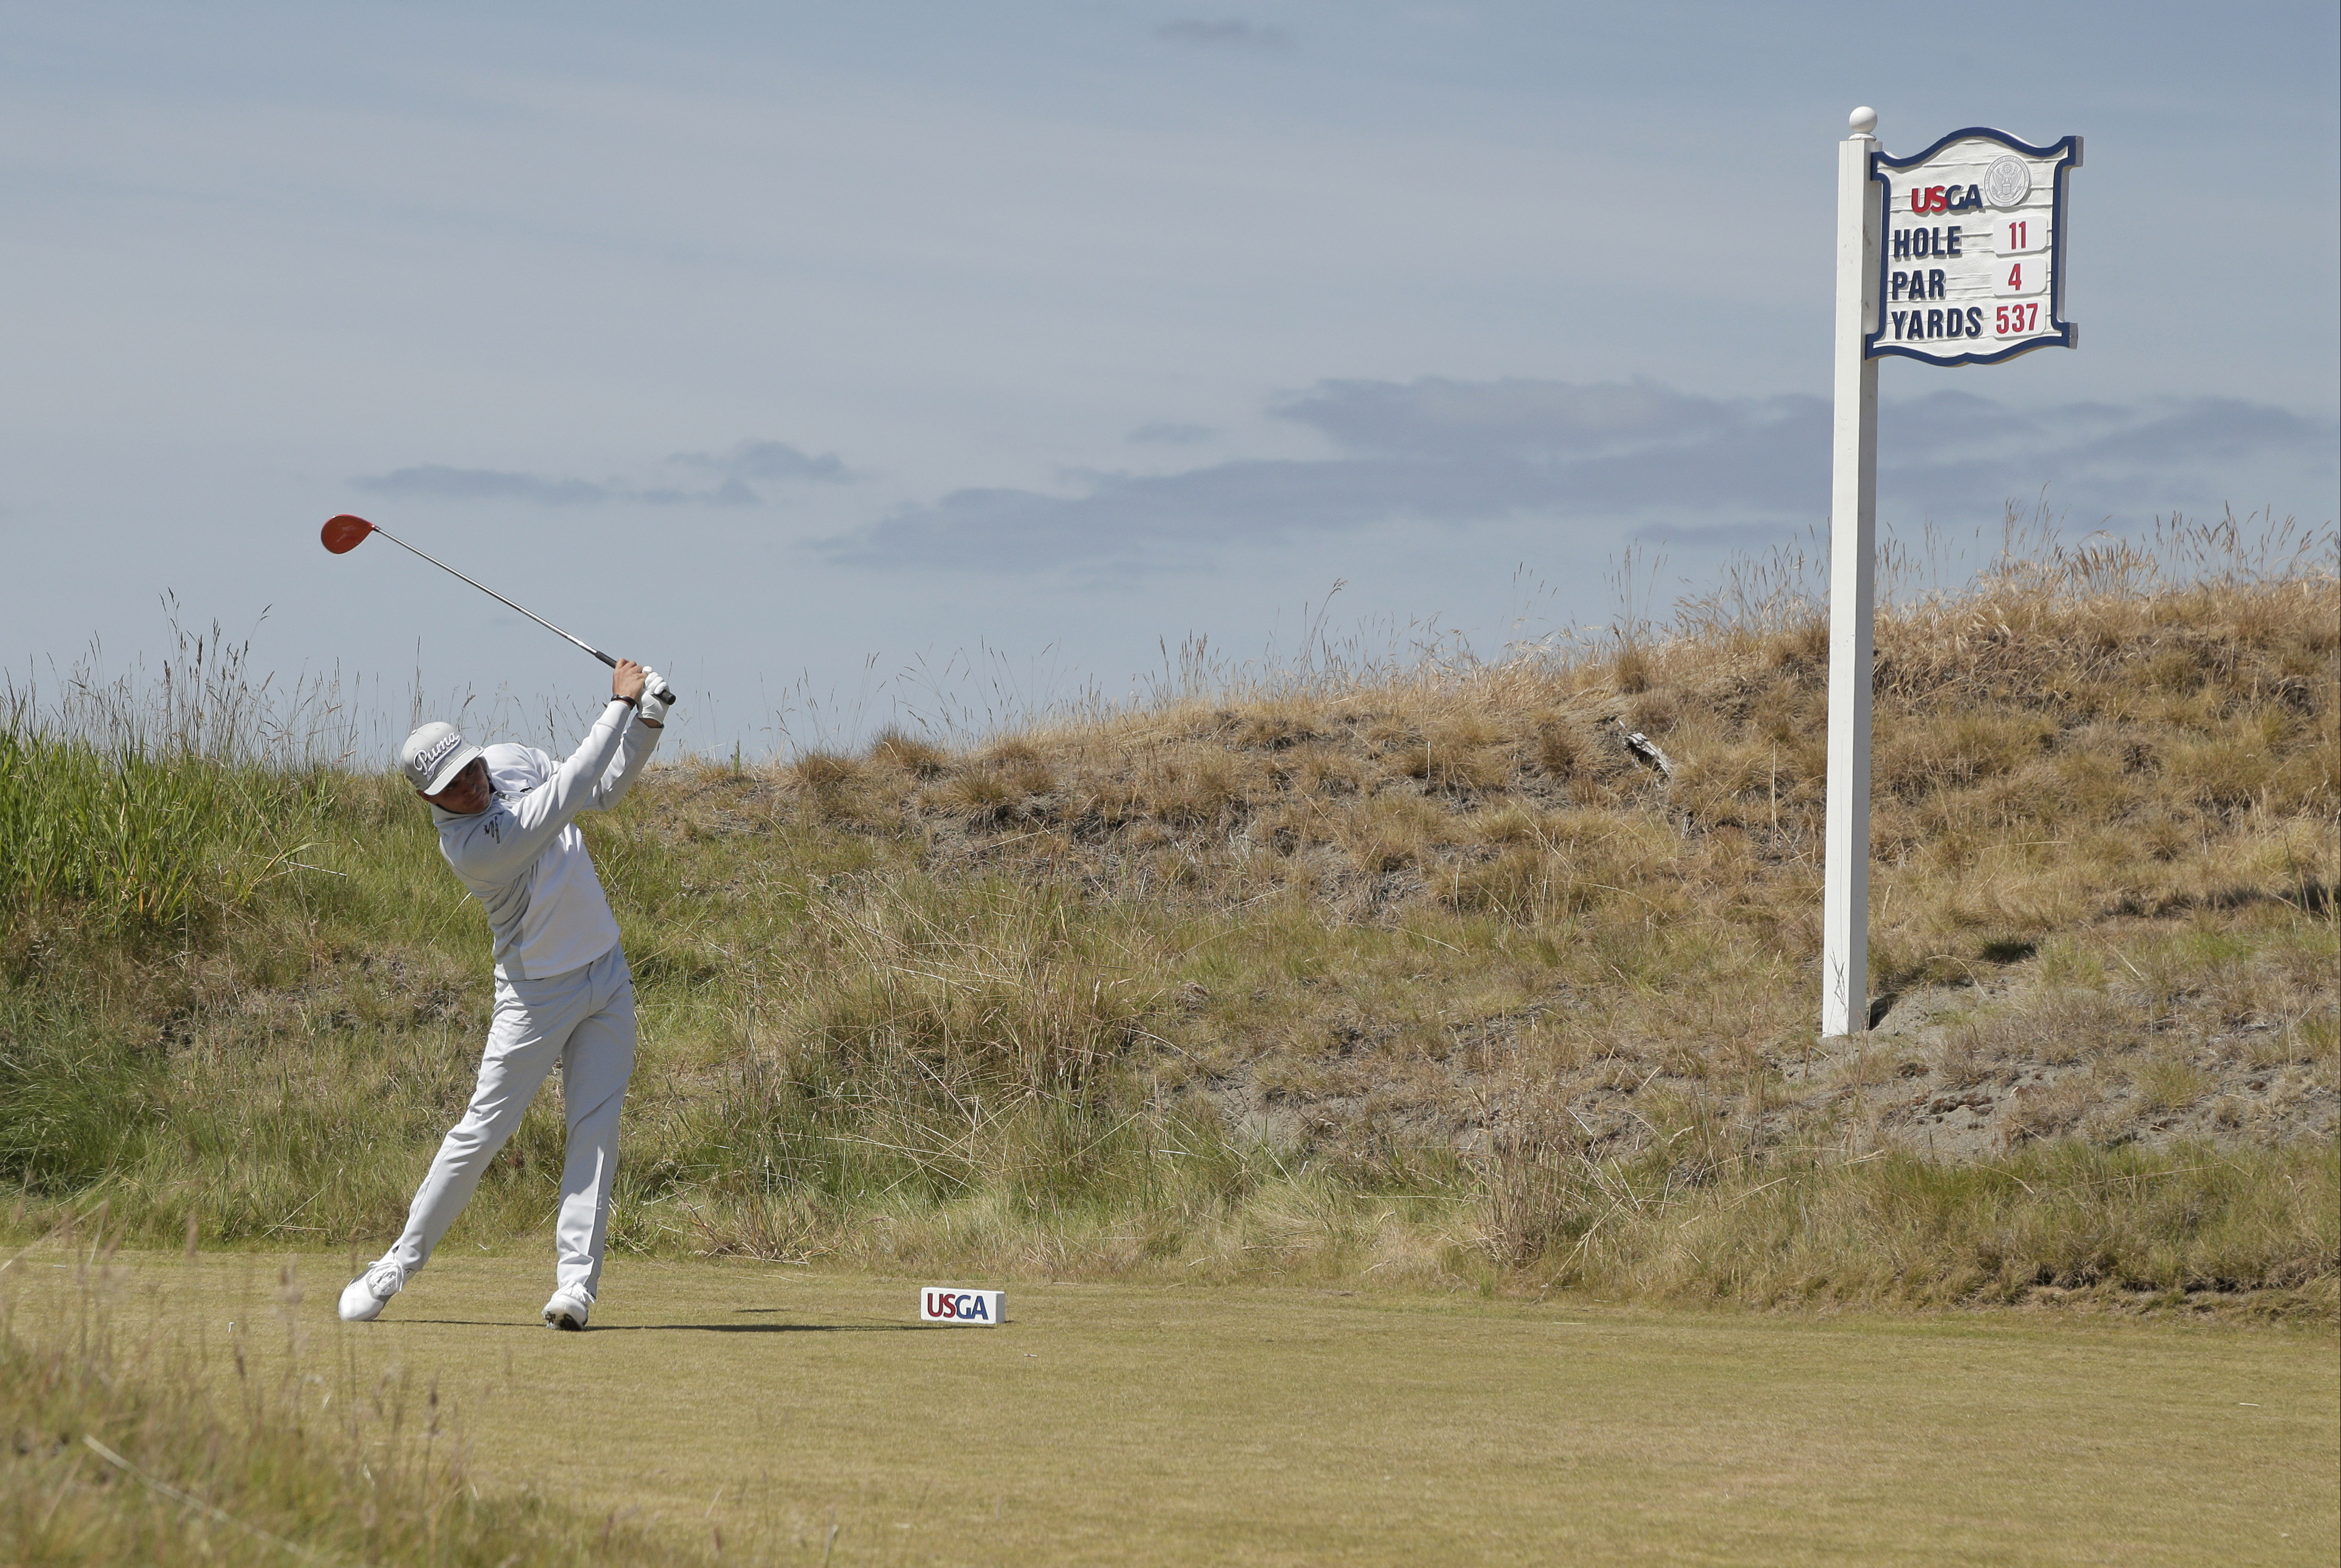 Rickie Fowler watches his tee shot on the 11th hole during a practice round for the U.S. Open golf tournament at Chambers Bay on Tuesday, June 16, 2015 in University Place, Wash. (AP Photo/Charlie Riedel)